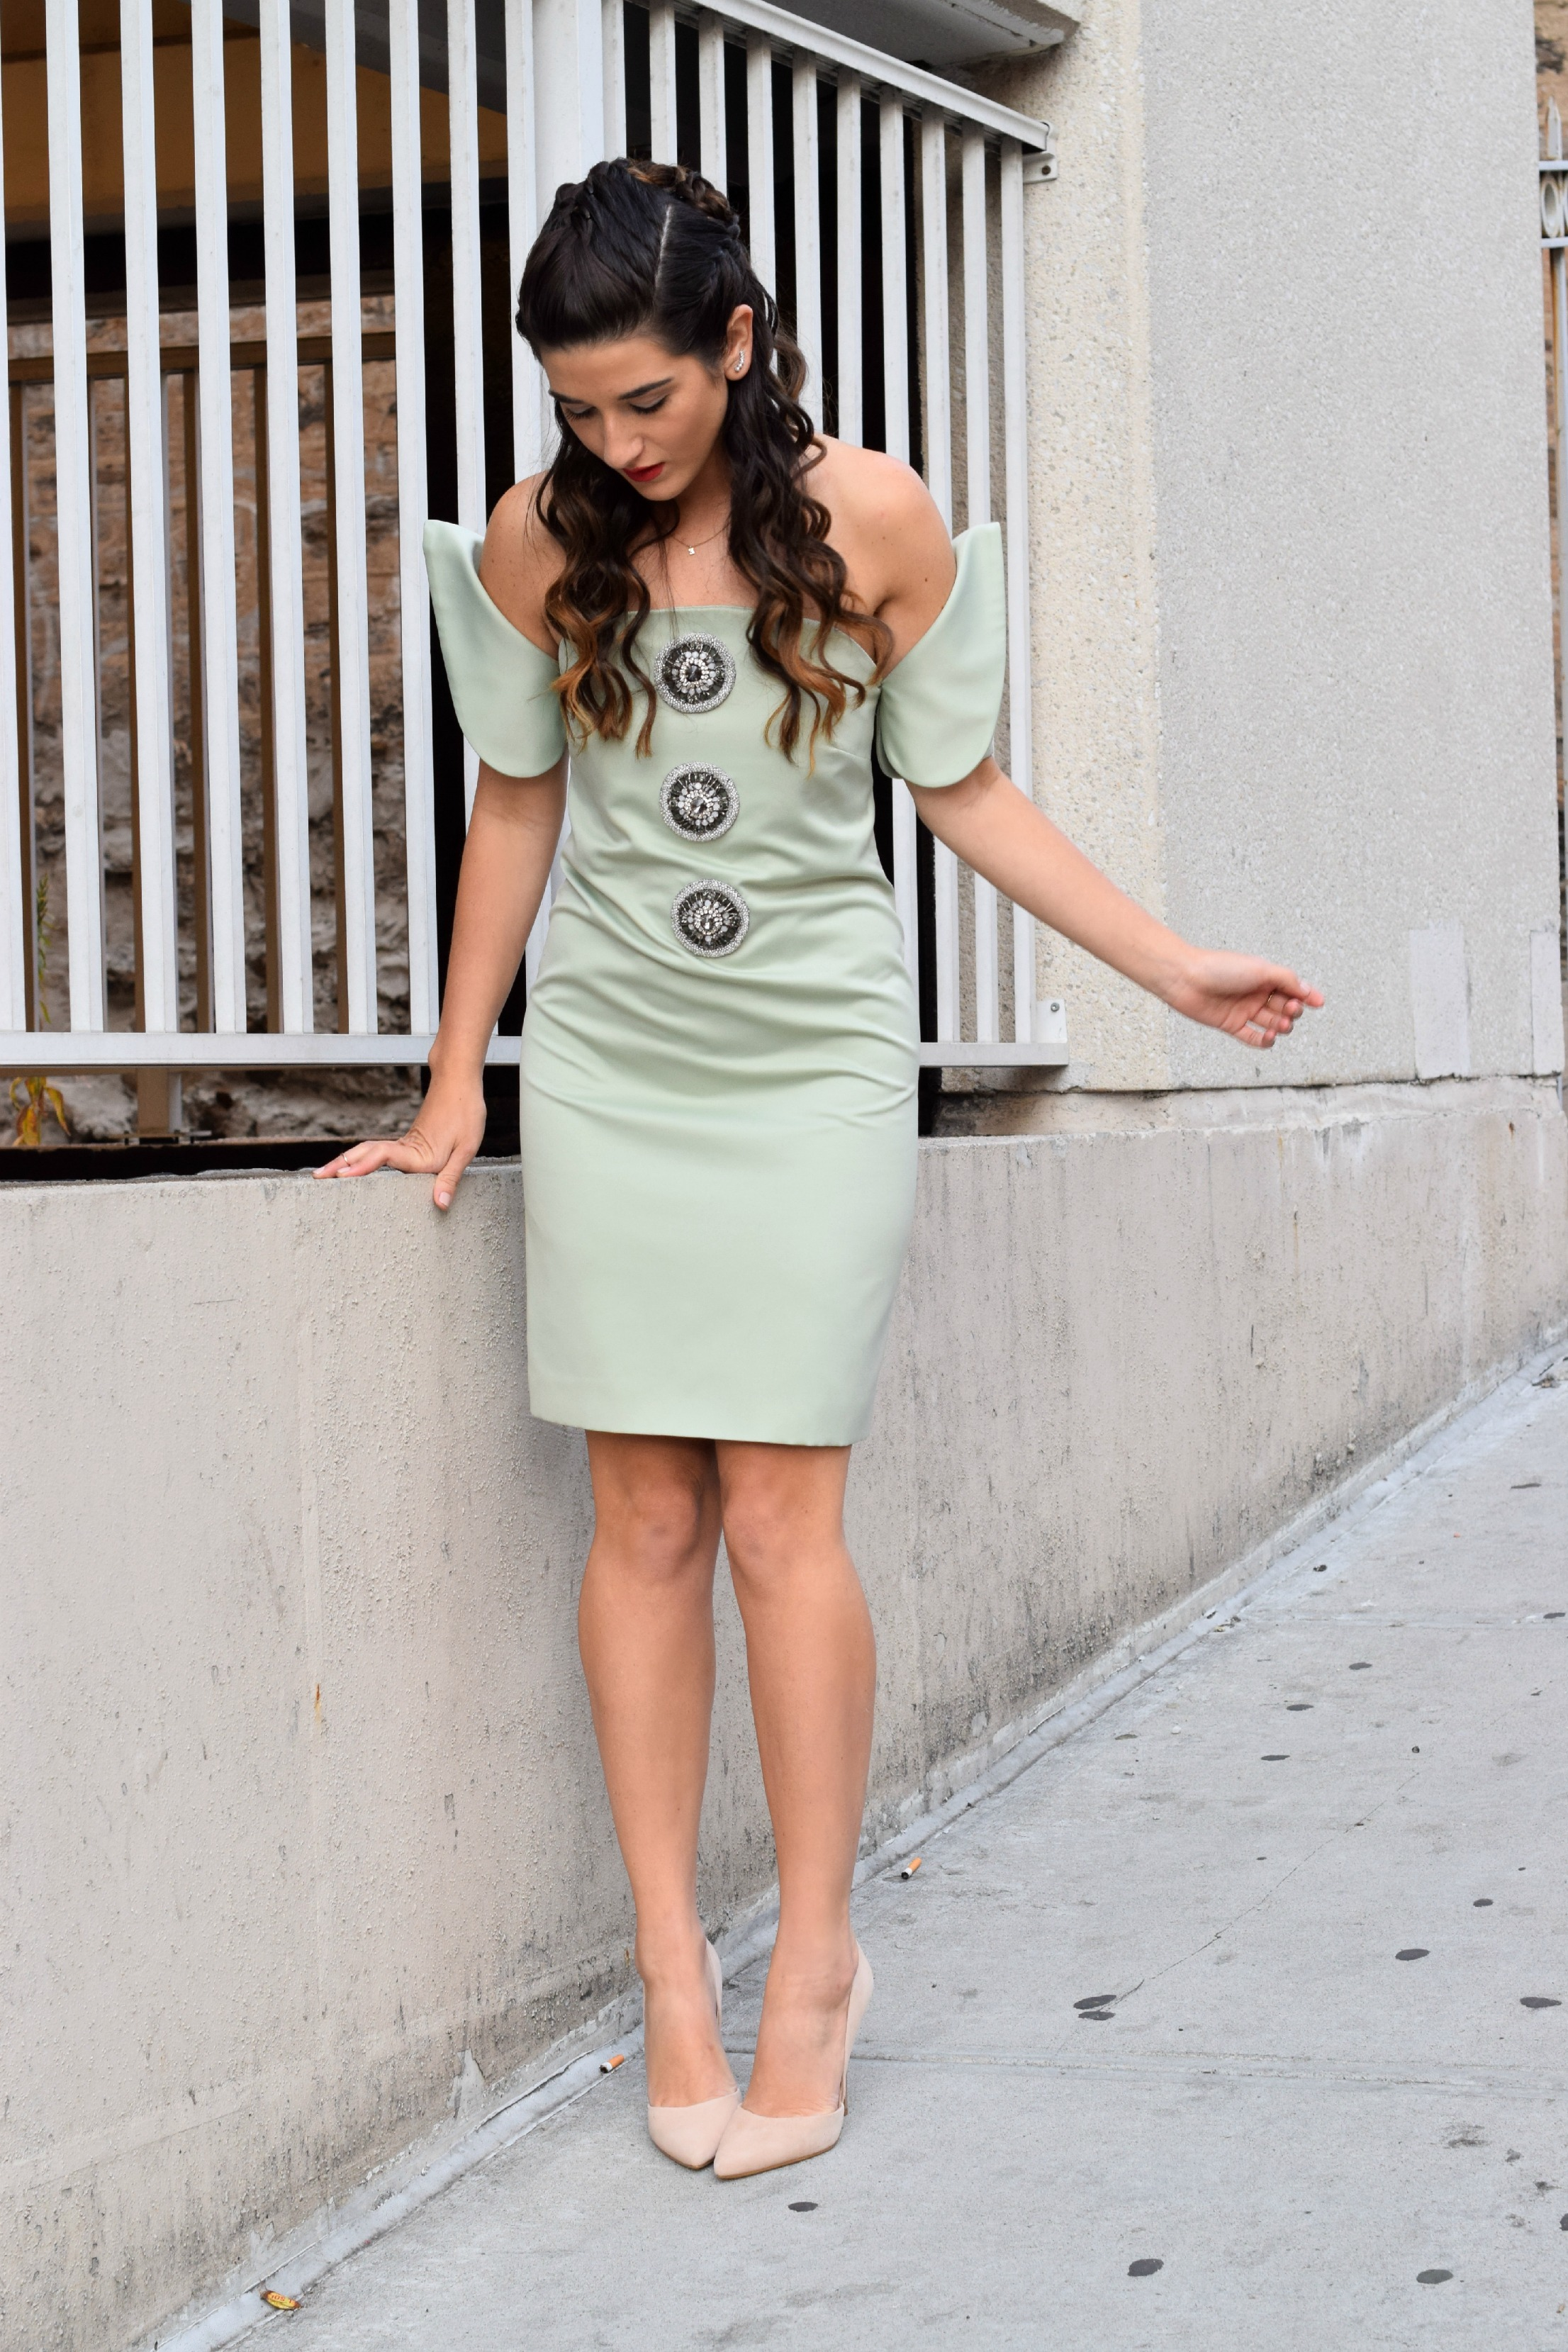 Sage Terno Cocktail Dress Mestiza NY Louboutins & Love Fashion Blog Esther Santer Street Style Blogger NYC Photoshoot Earrings Steve Madden Heels Pumps Hair Brunette Model Girl Women Trendy Outfit Shop OOTD Look Inspiration Inspo Pretty Beauty Braids.JPG